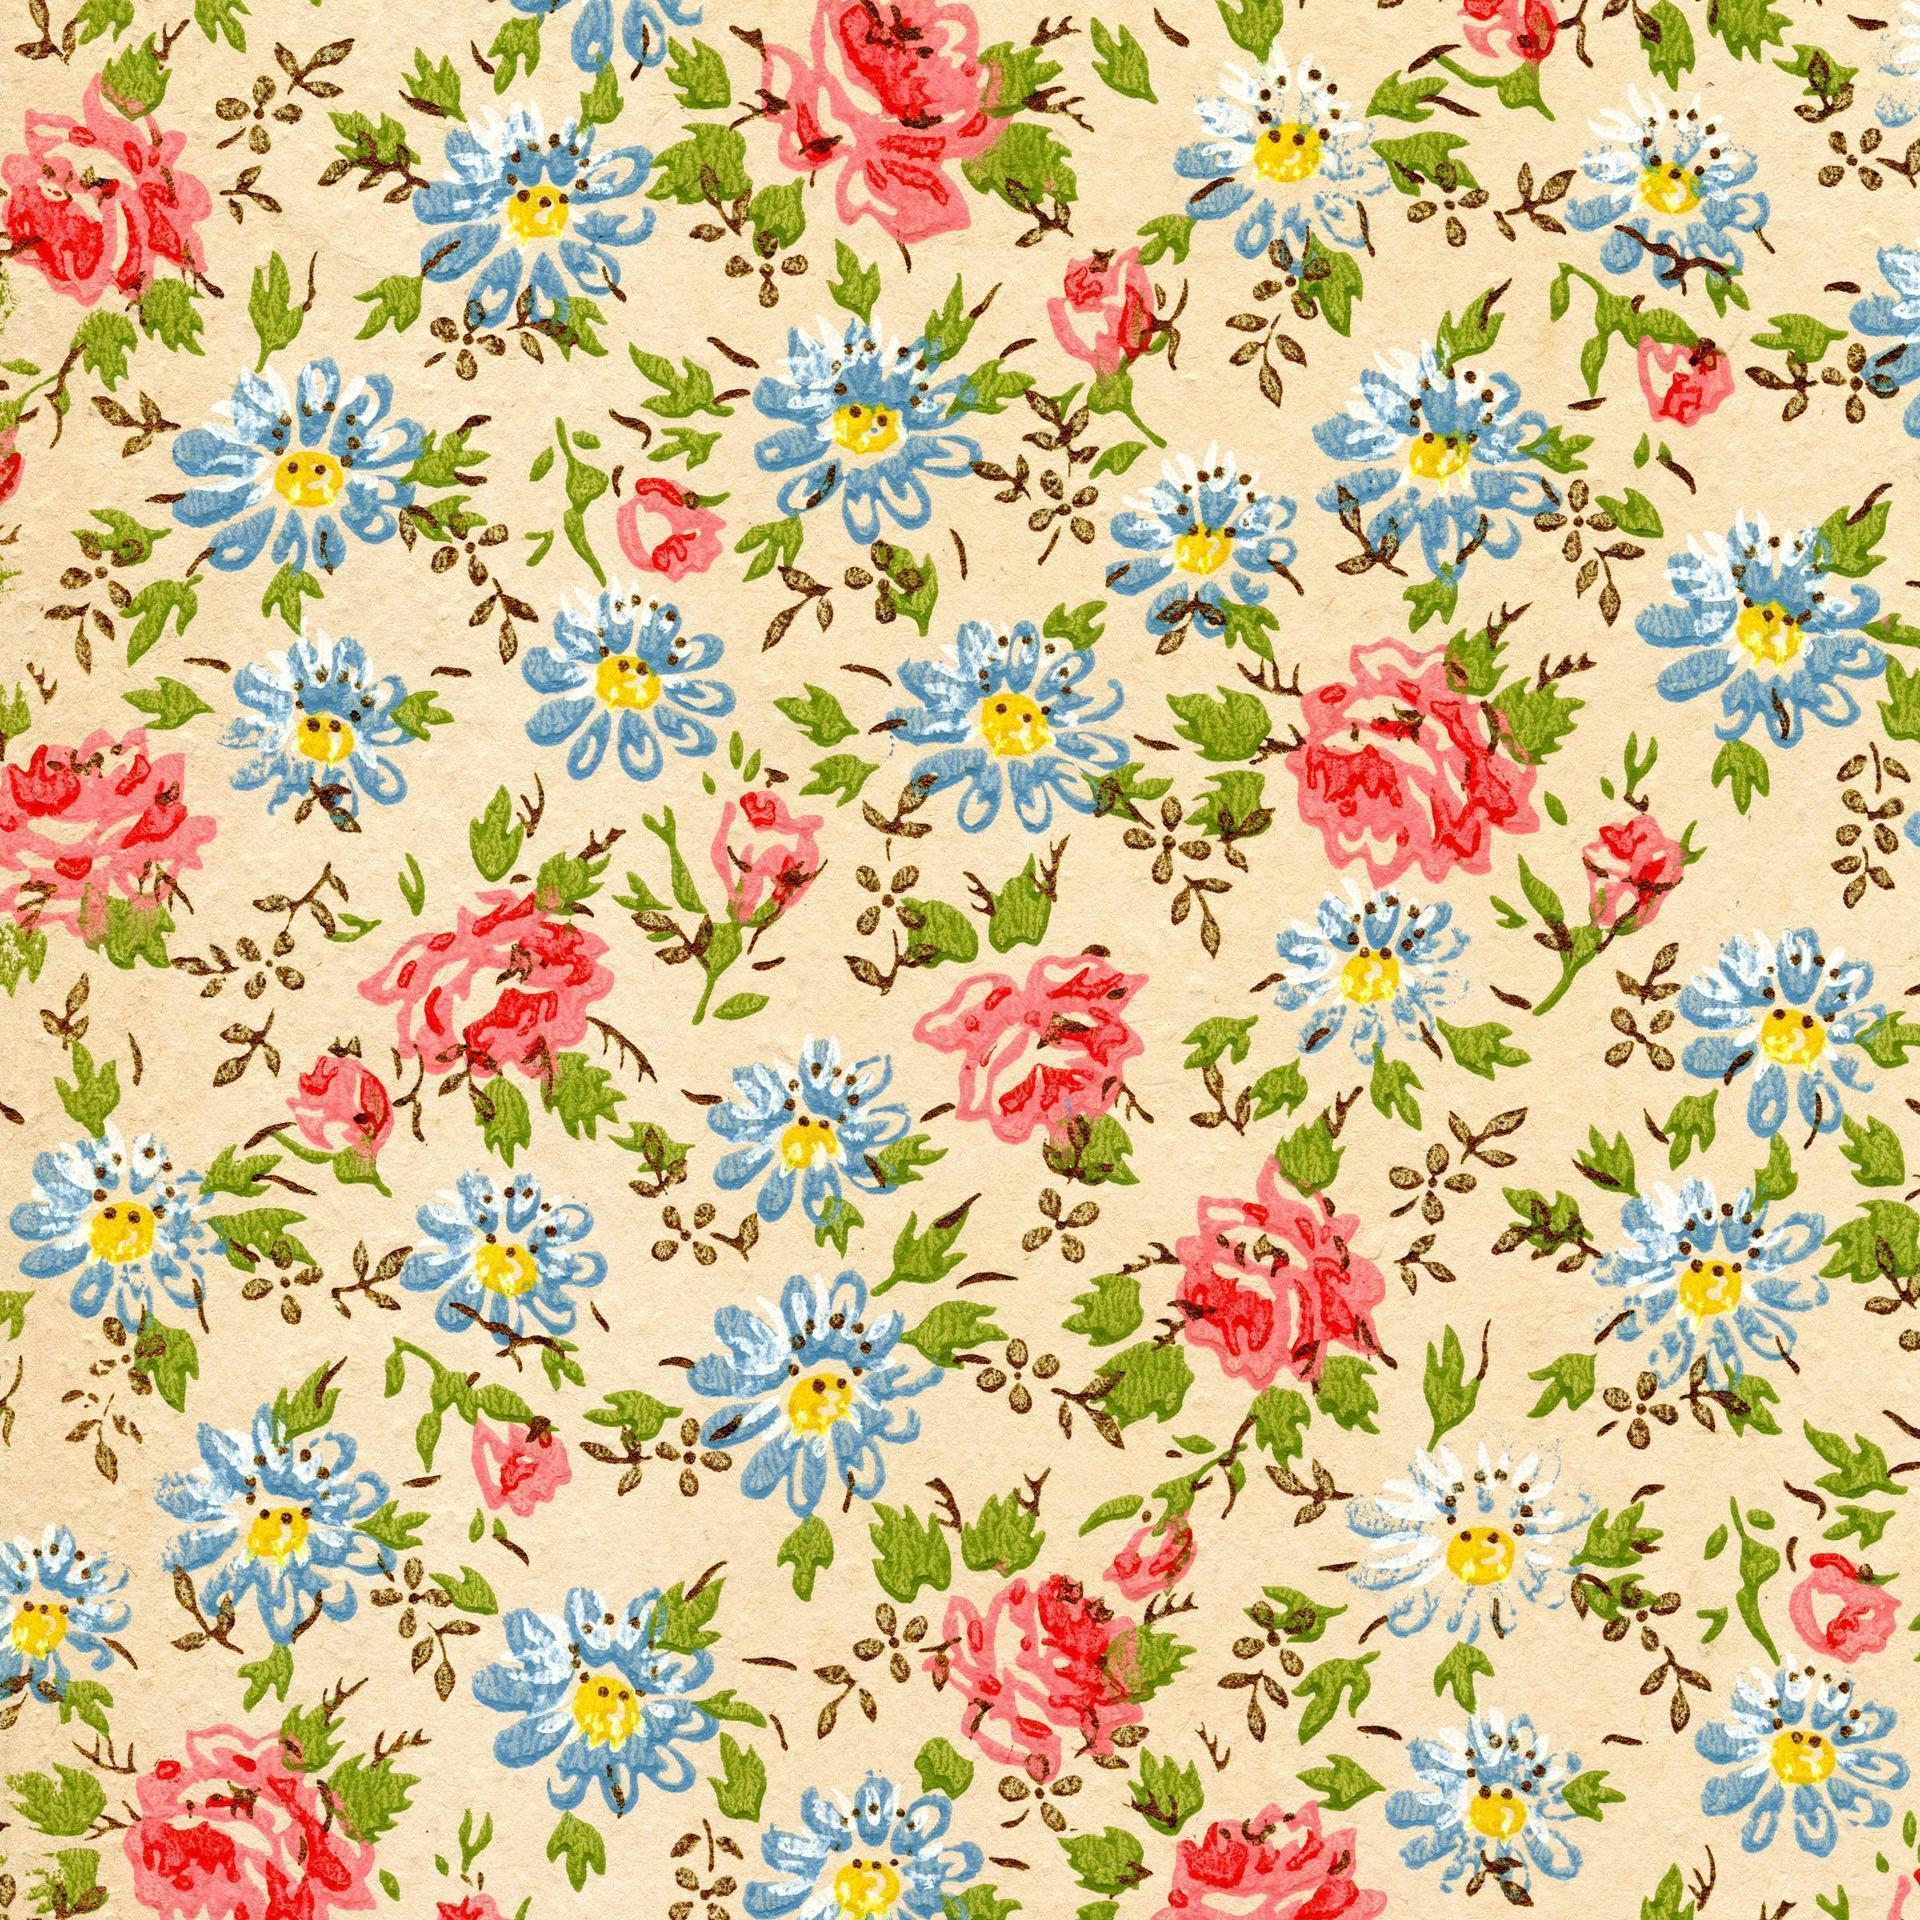 Floral Desktop Backgrounds 1920x1920